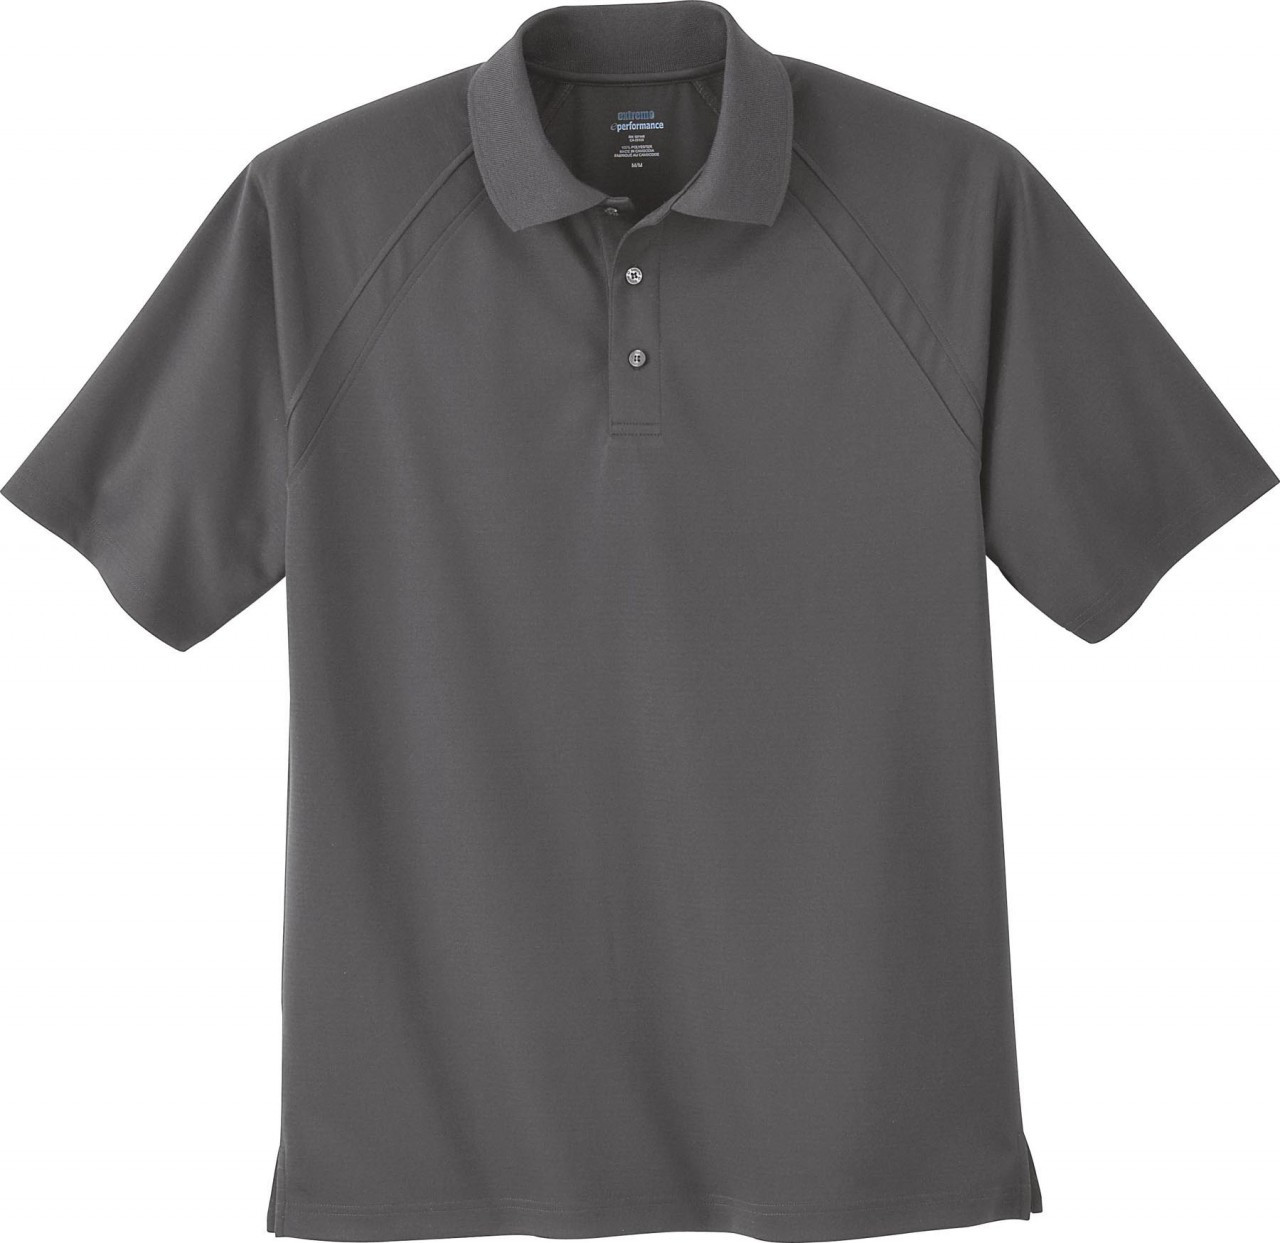 Black Silk -  85093 Extreme Men's Eperformance™ Ottoman Textured Polo Shirt | BlankClothing.ca